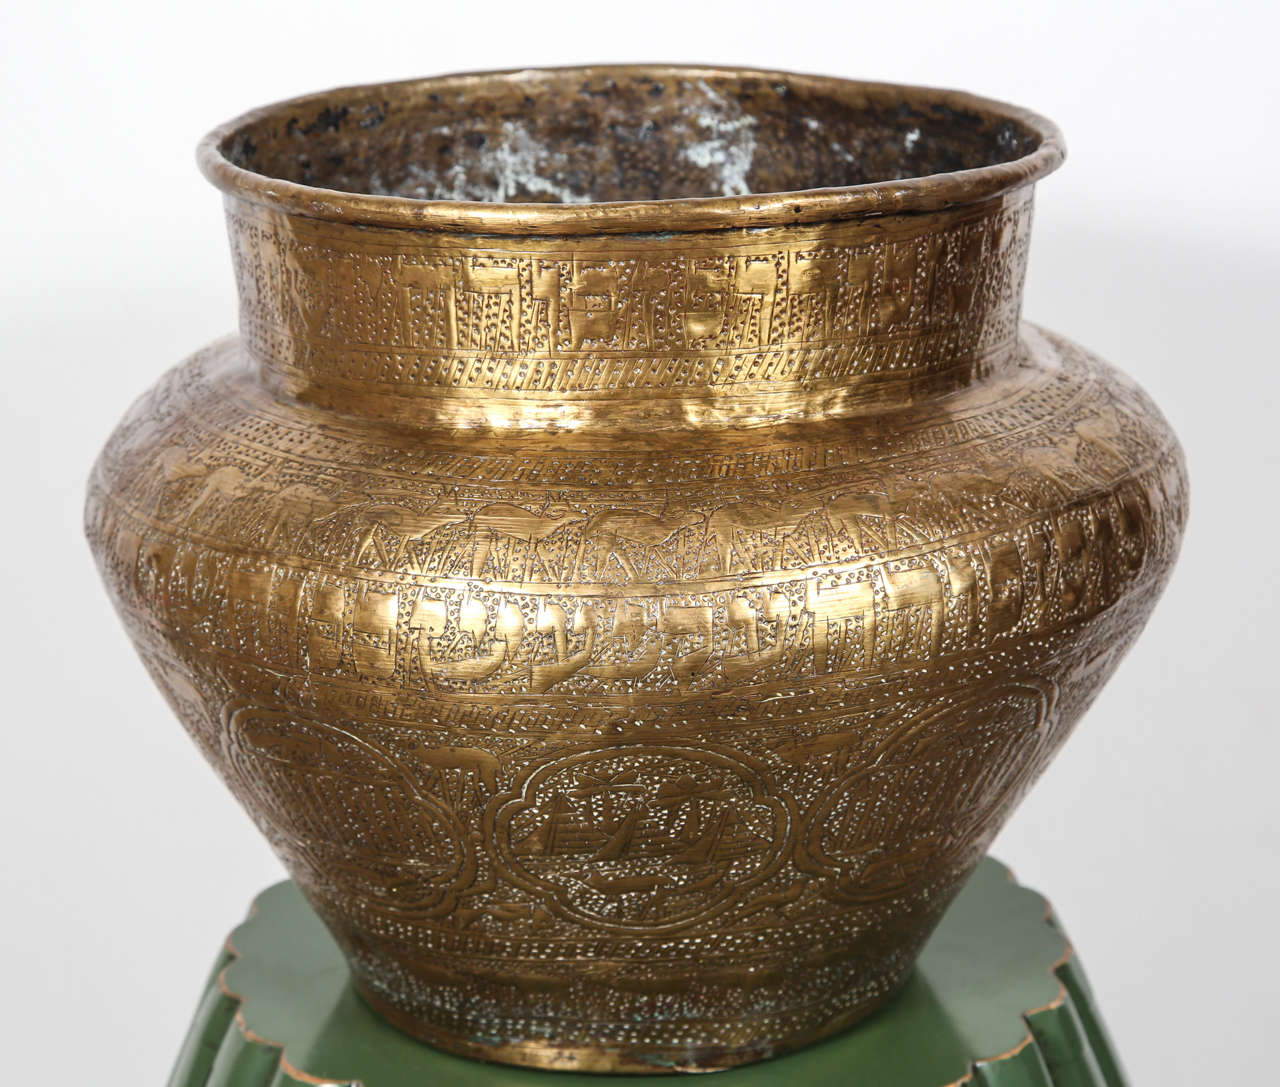 Egyptian hebraique revival hand etched brass pot at 1stdibs 19th century large jewish egyptian finely hand etched brass memorial bowl decorated with medallions with hebrew reviewsmspy